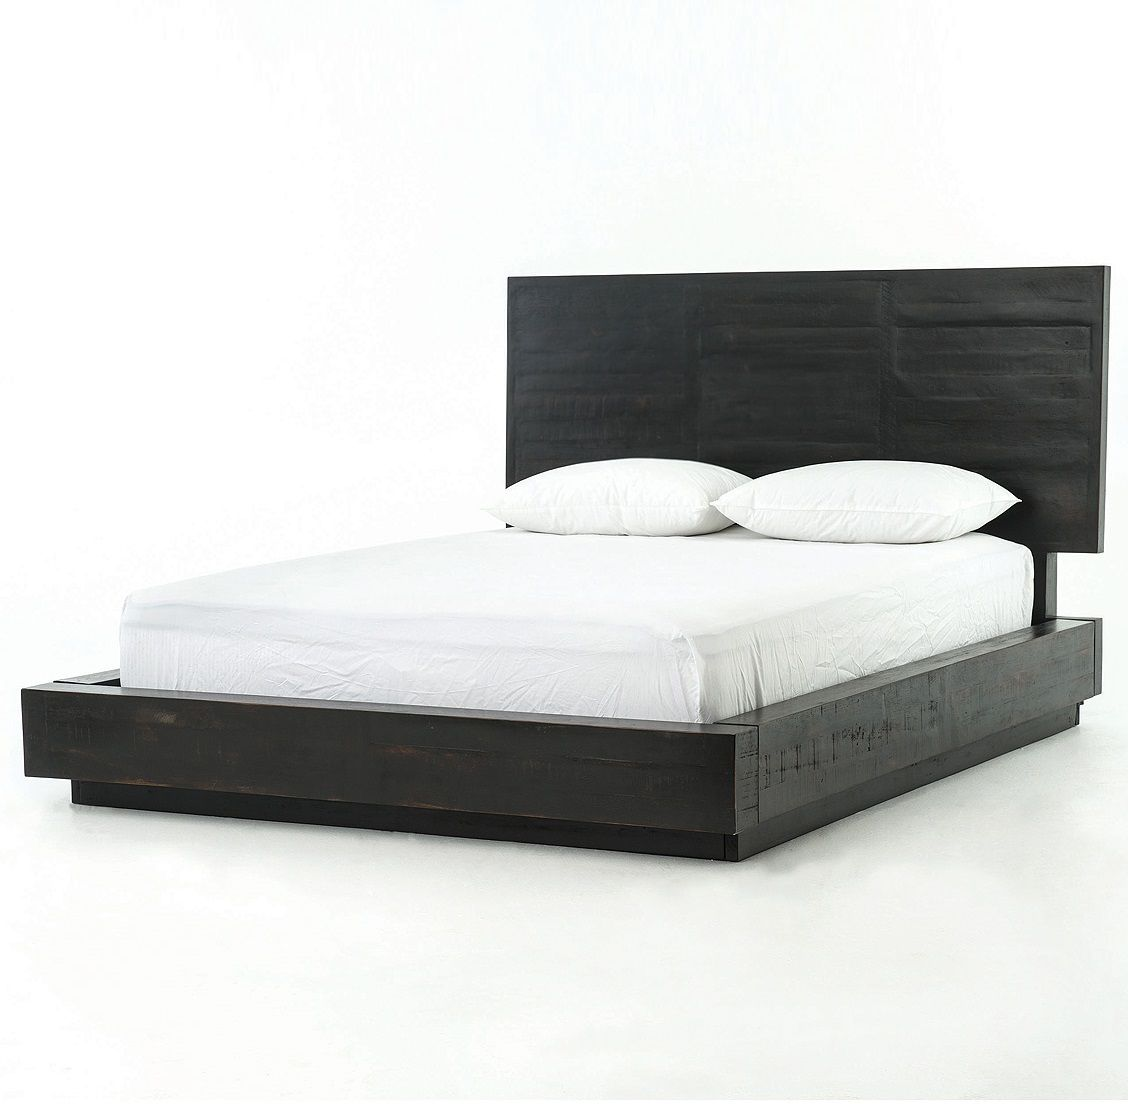 modern black wood queen size platform bed frame - Wood Platform Bed Frame Queen